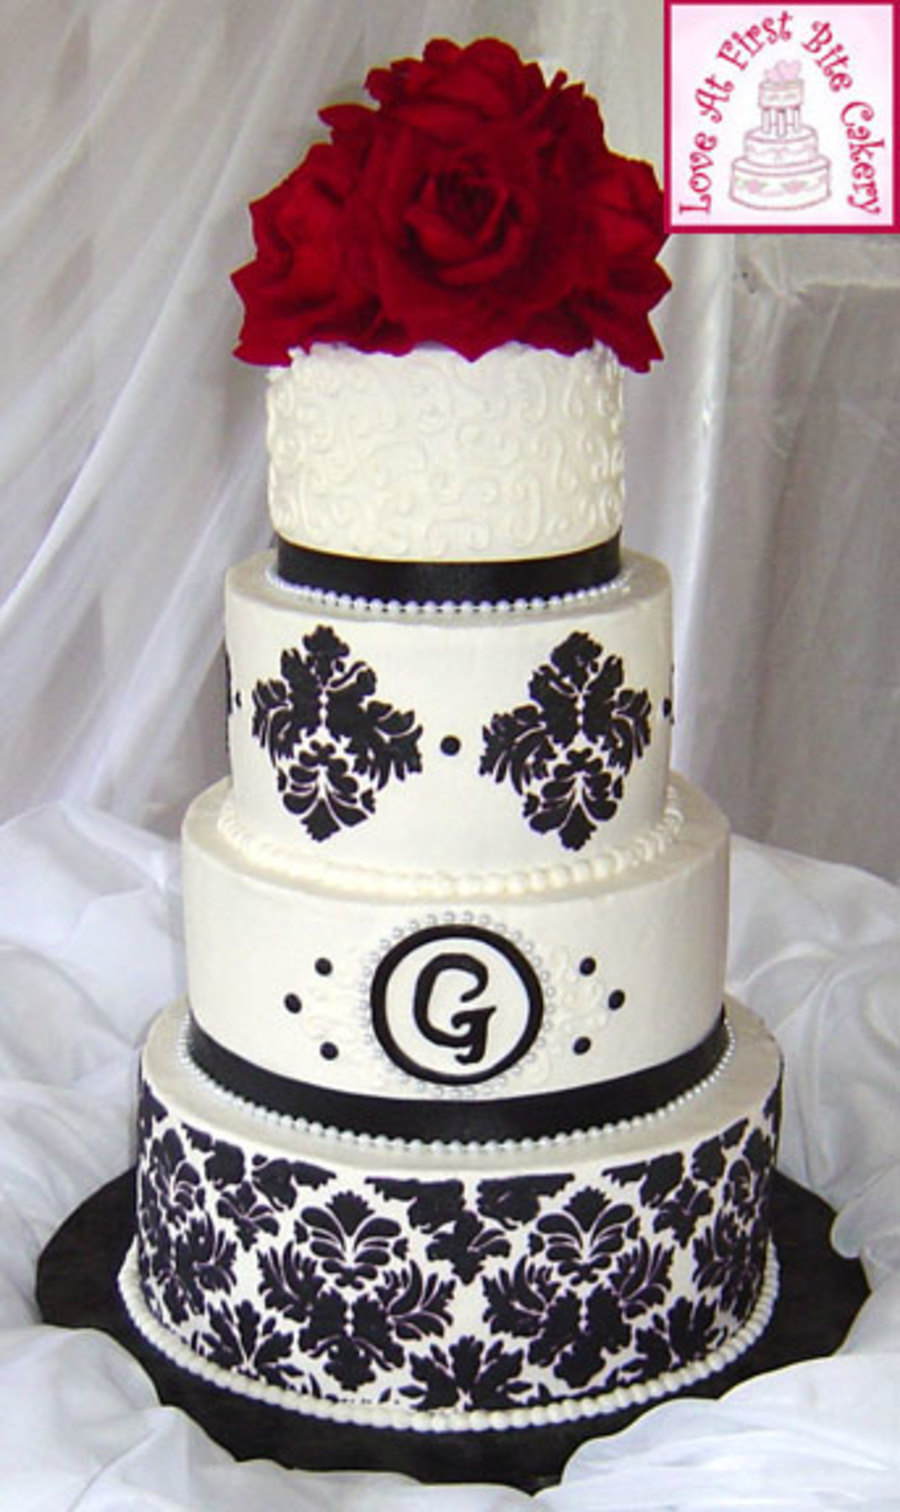 Stenciled Black White Red Wedding Cake   CakeCentral com Stenciled Black White Red Wedding Cake on Cake Central